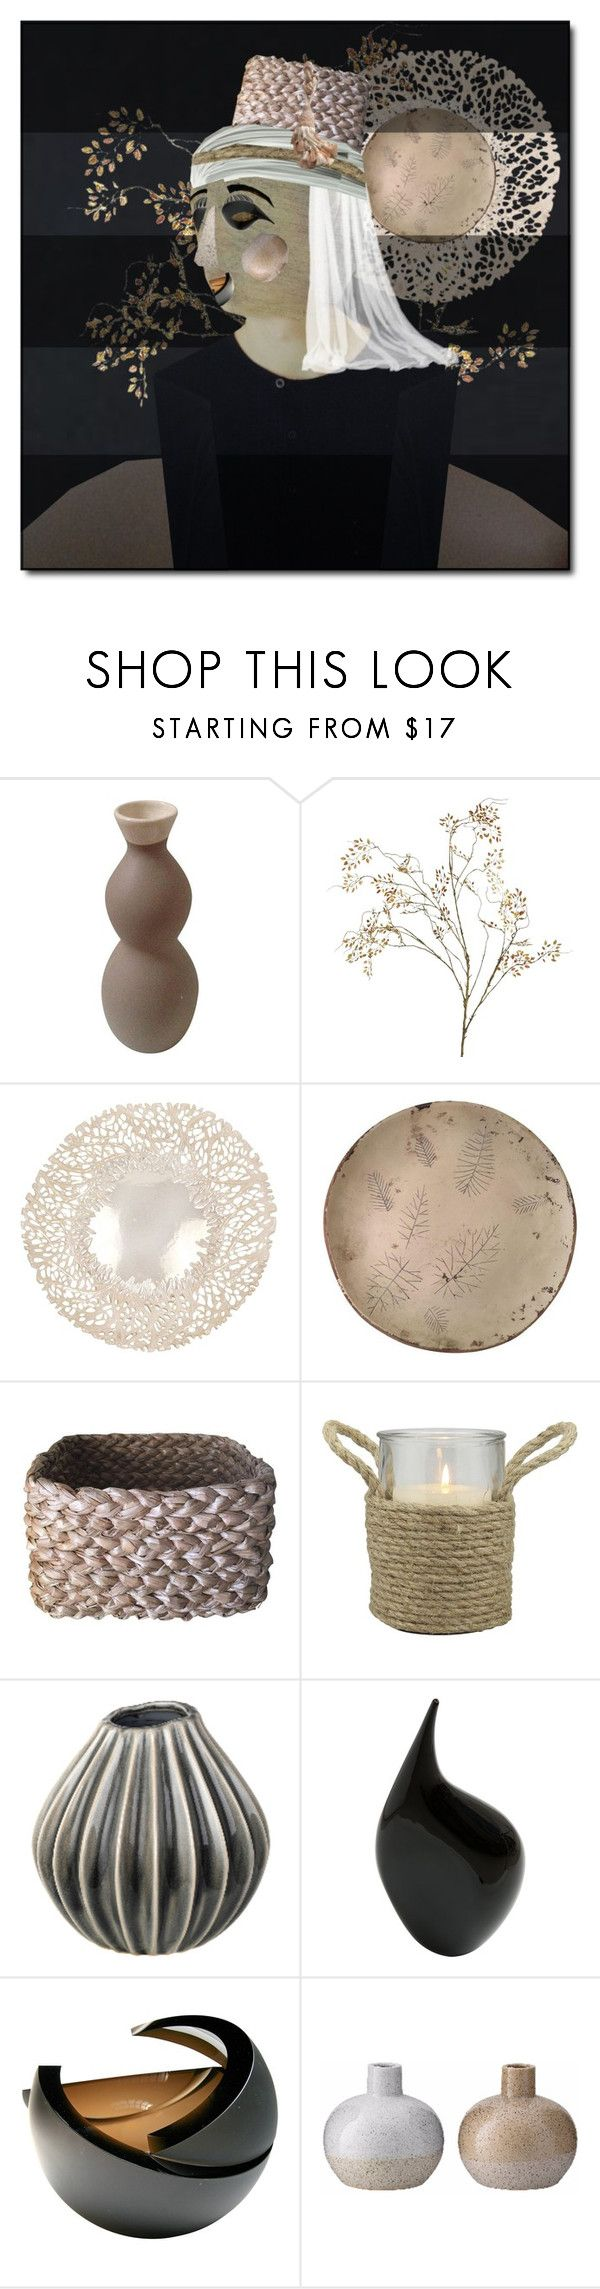 """""""Unconventional Art Challenge"""" by ollie-and-me ❤ liked on Polyvore featuring interior, interiors, interior design, home, home decor, interior decorating, Pier 1 Imports, Pomeroy, Stonebriar Collection and Anna Torfs"""